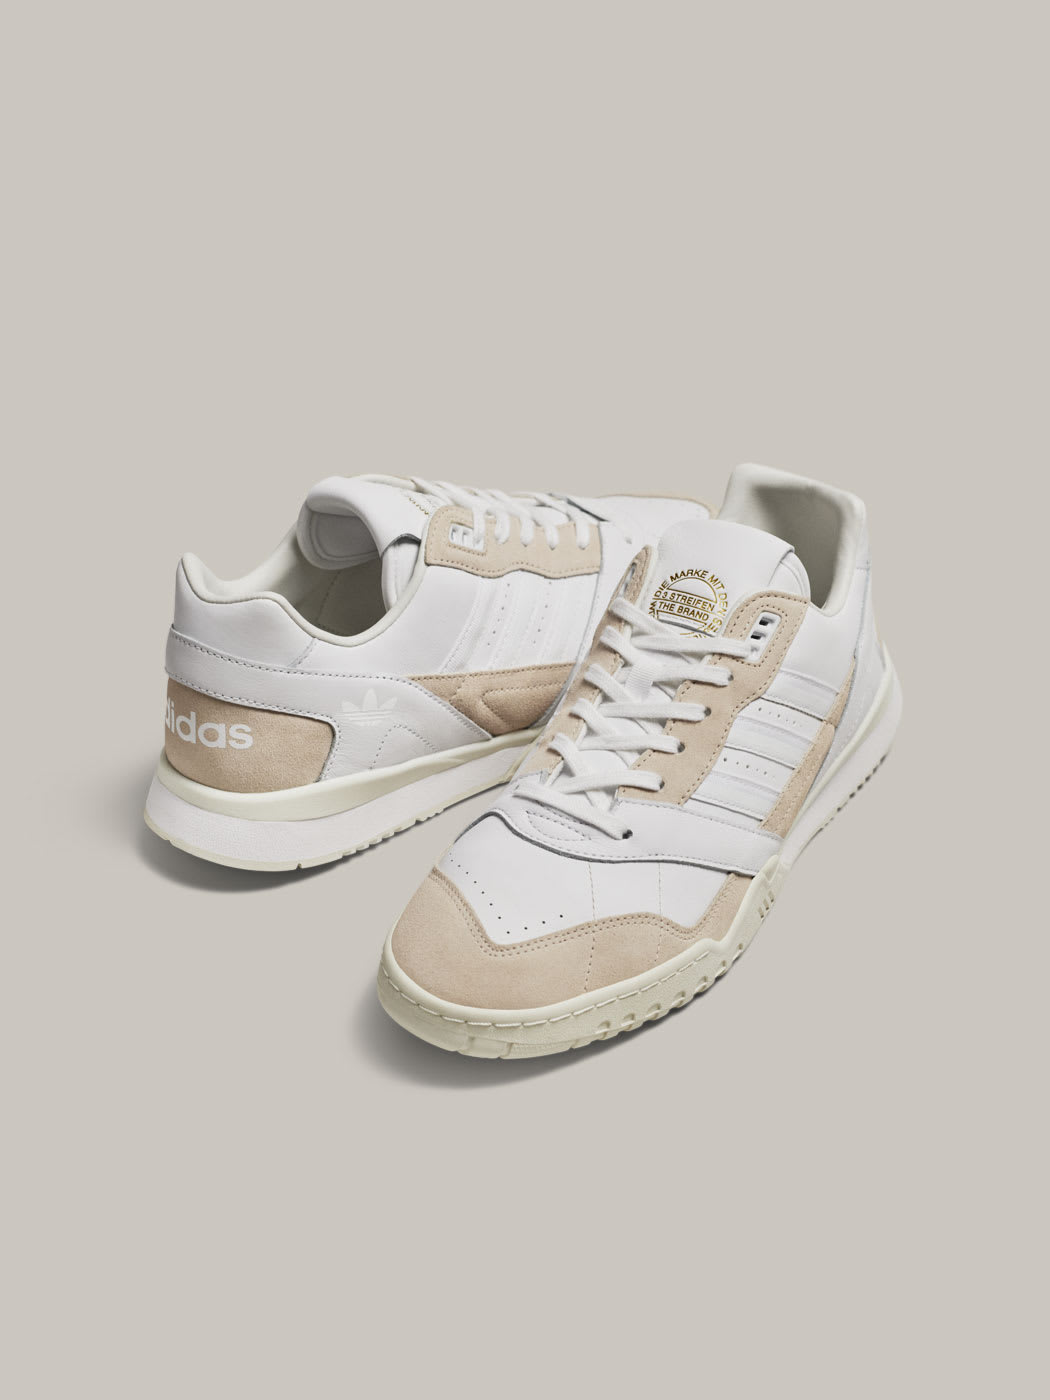 Adidas Sold 1 Million Shoes Made of Ocean Plastic Here's